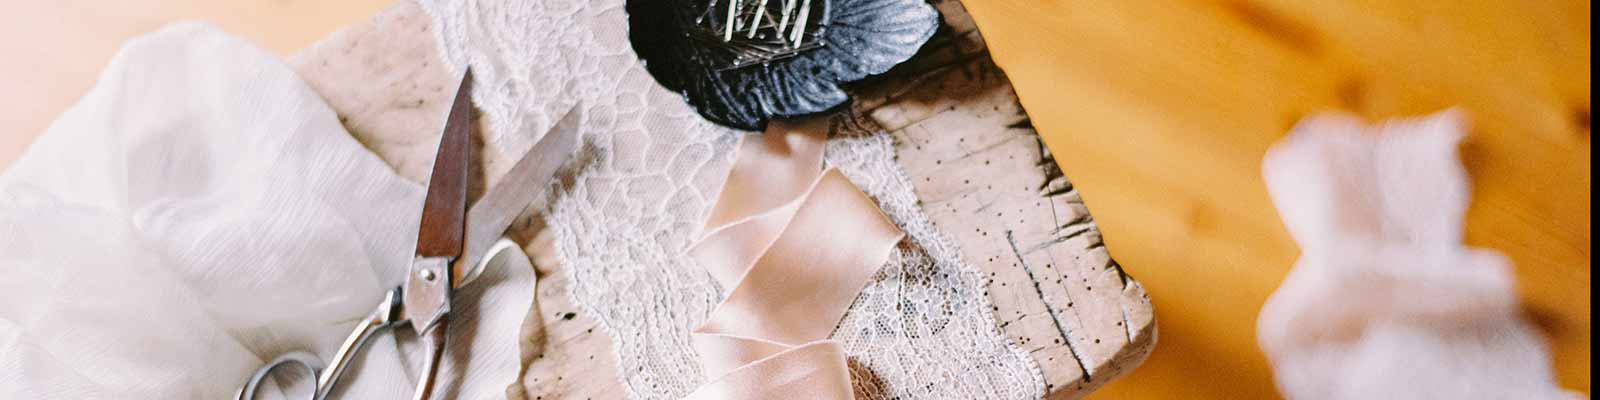 scissors fabric lace brides